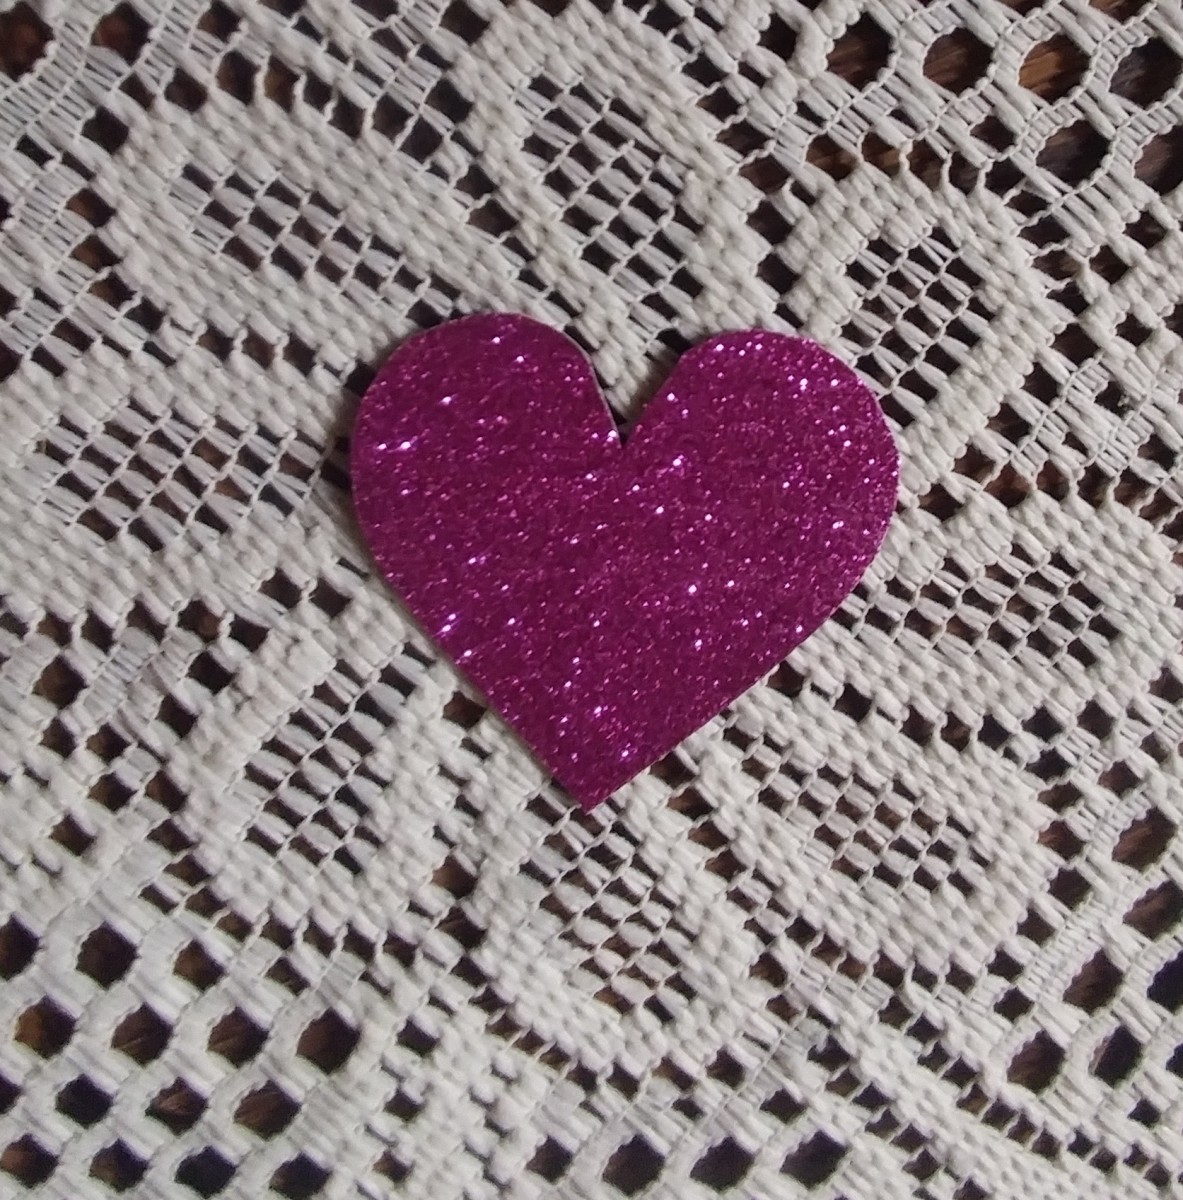 I used shiny paper to cut this heart out.